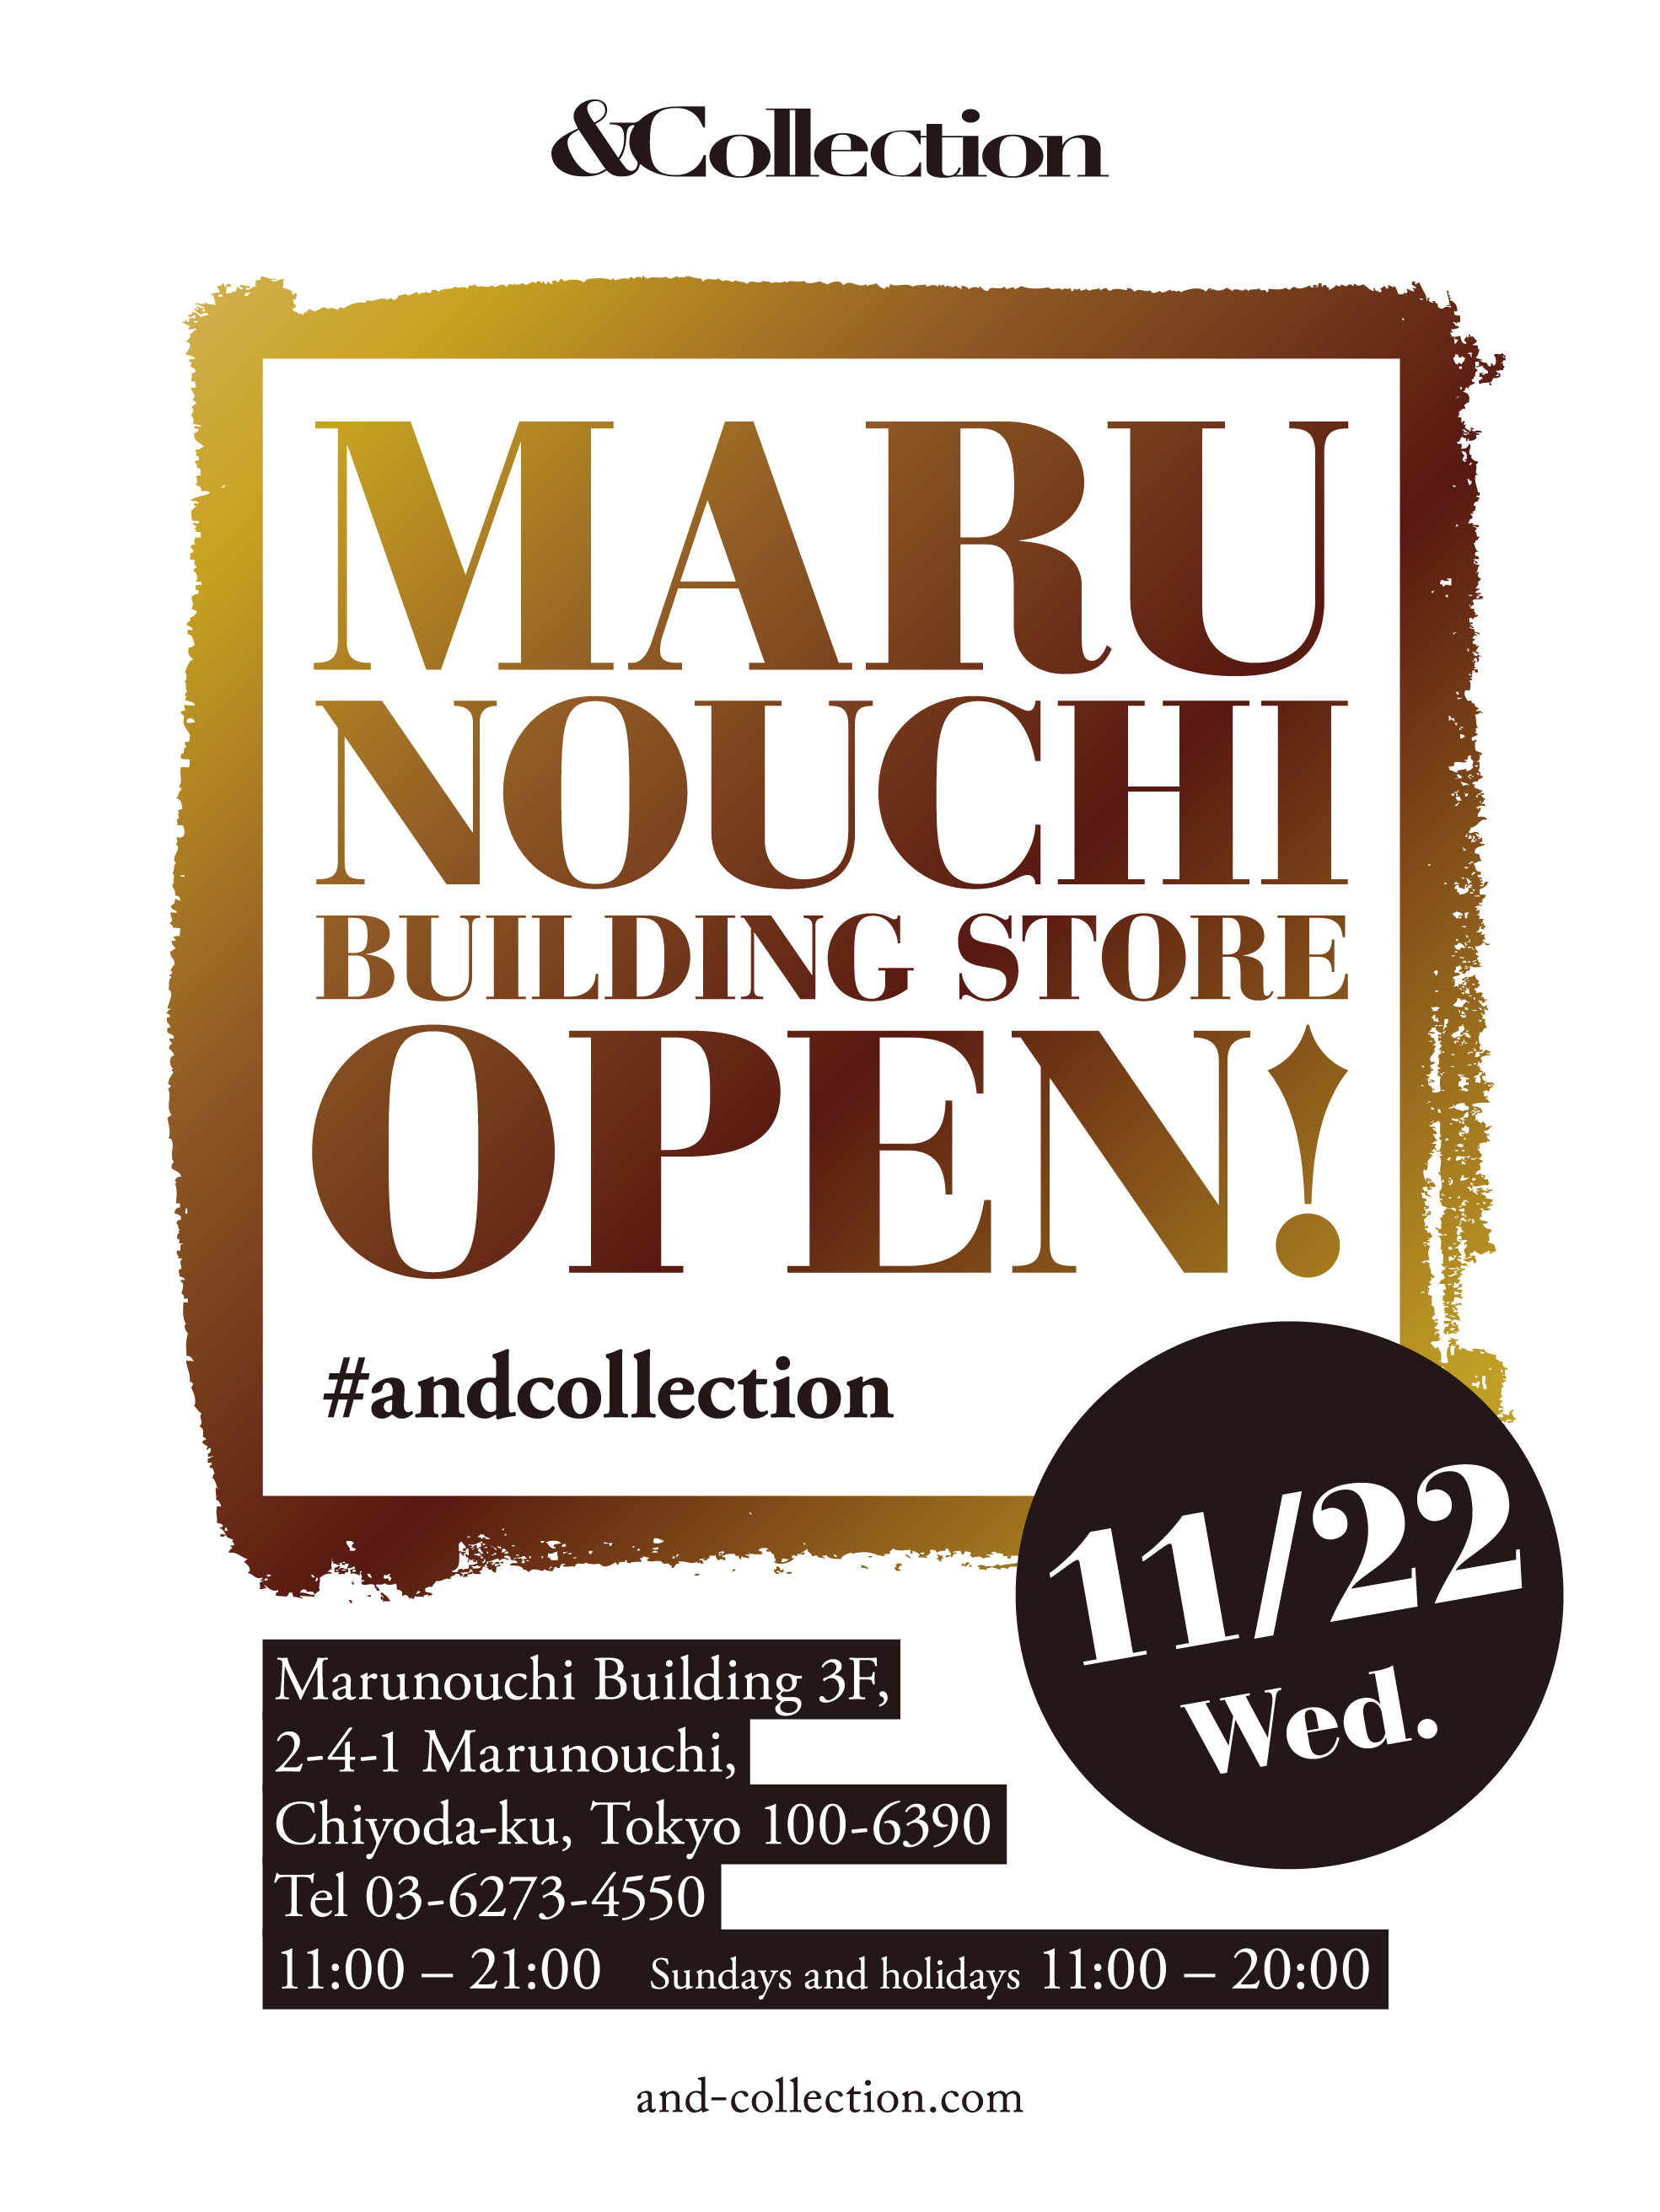 &Collection丸の内店が11月22日にOPEN